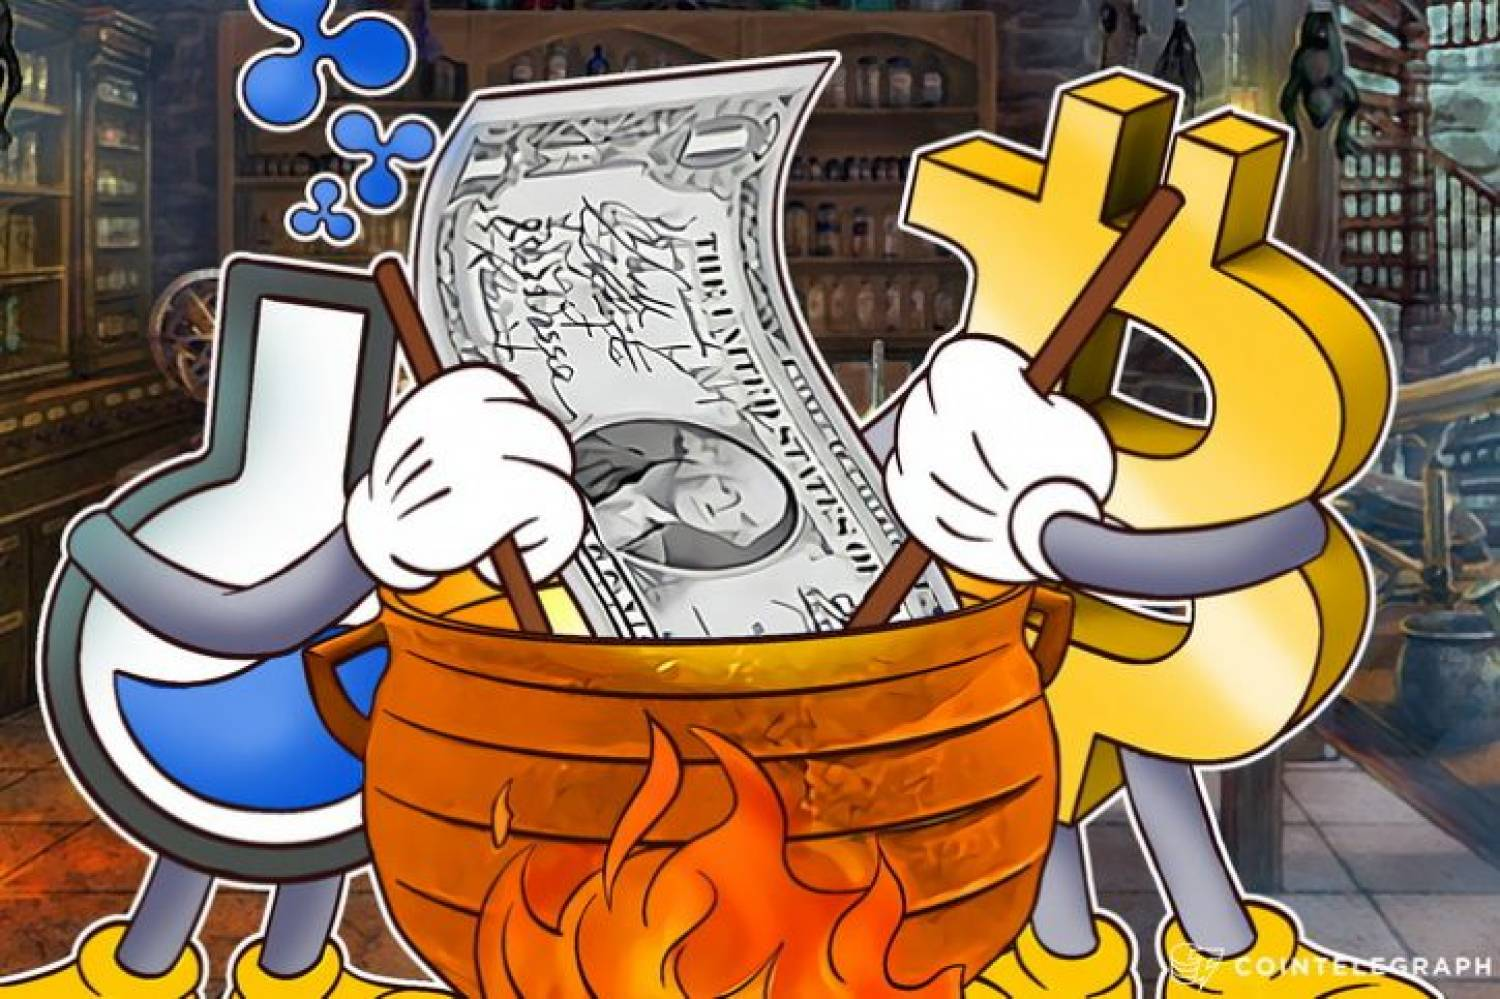 Bitcoin and Ripple Labs boil a dollar